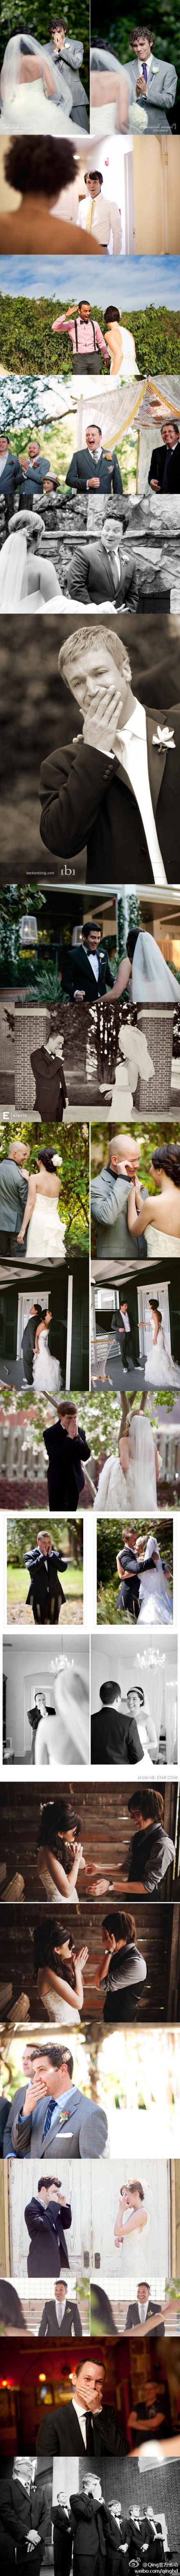 pictures of the groom's reaction. adorable.